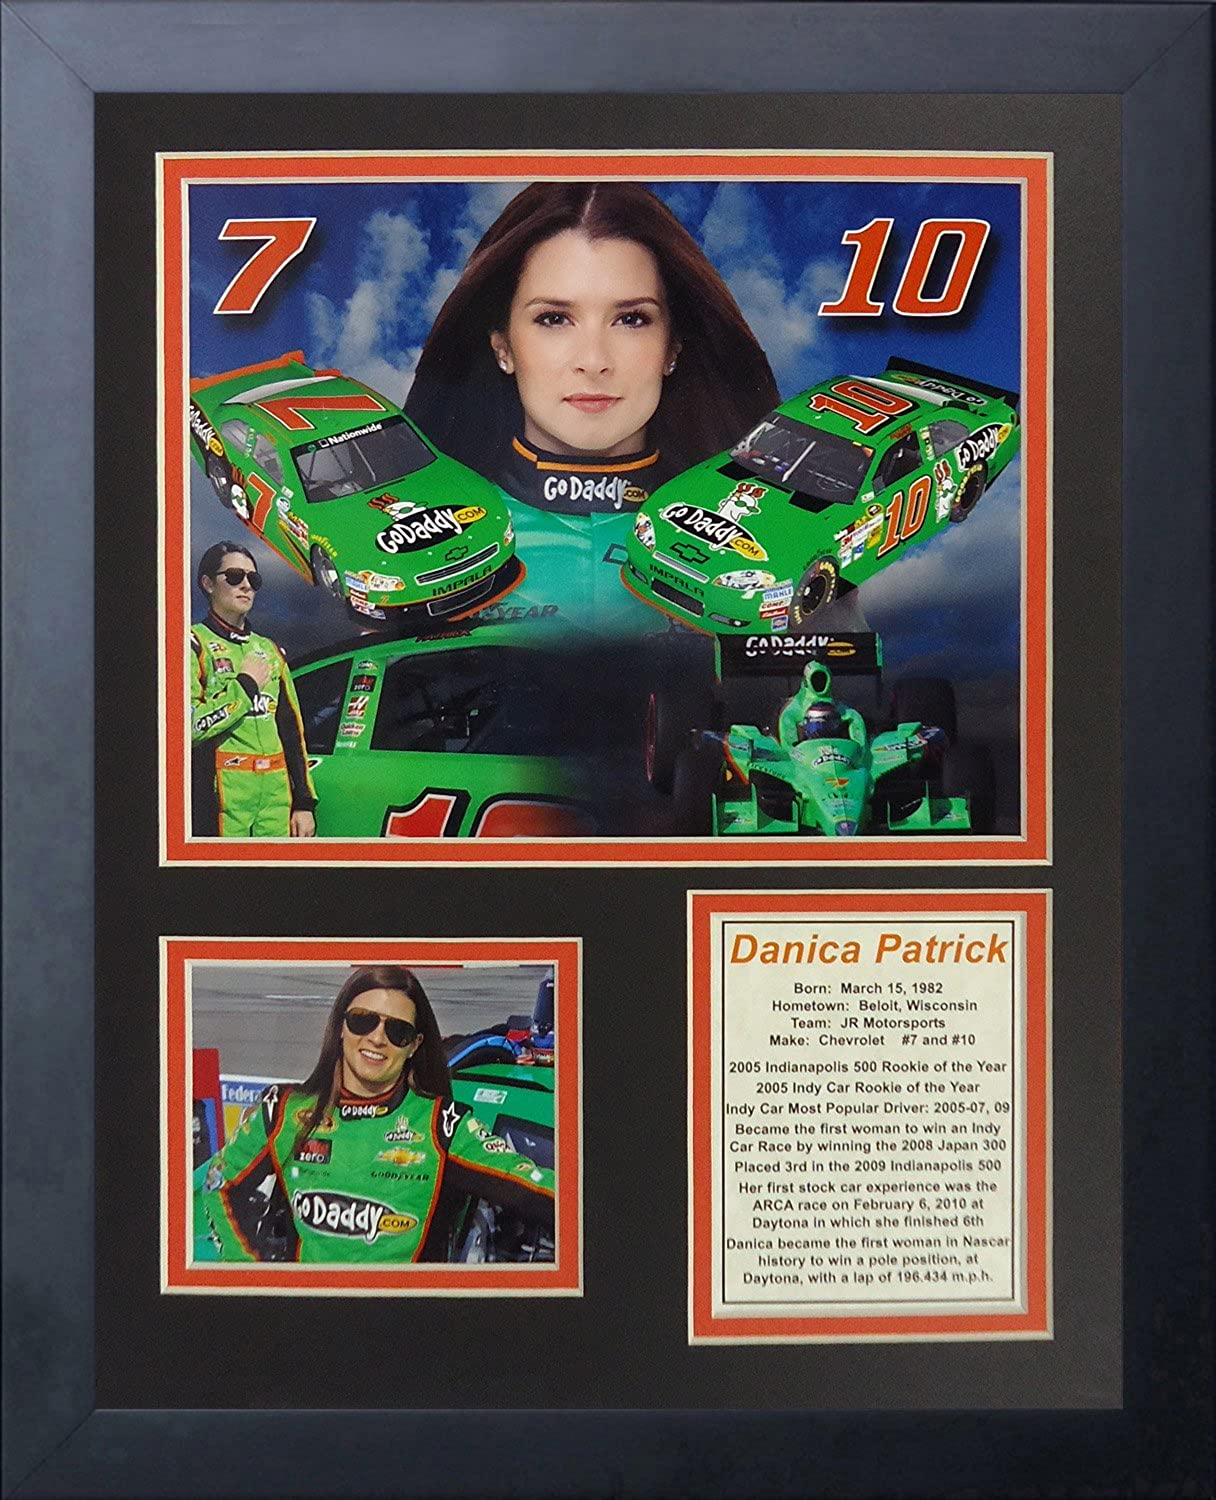 Legends Never Die Danica Patrick  Framed Photo Collage, 11 x 14Inch